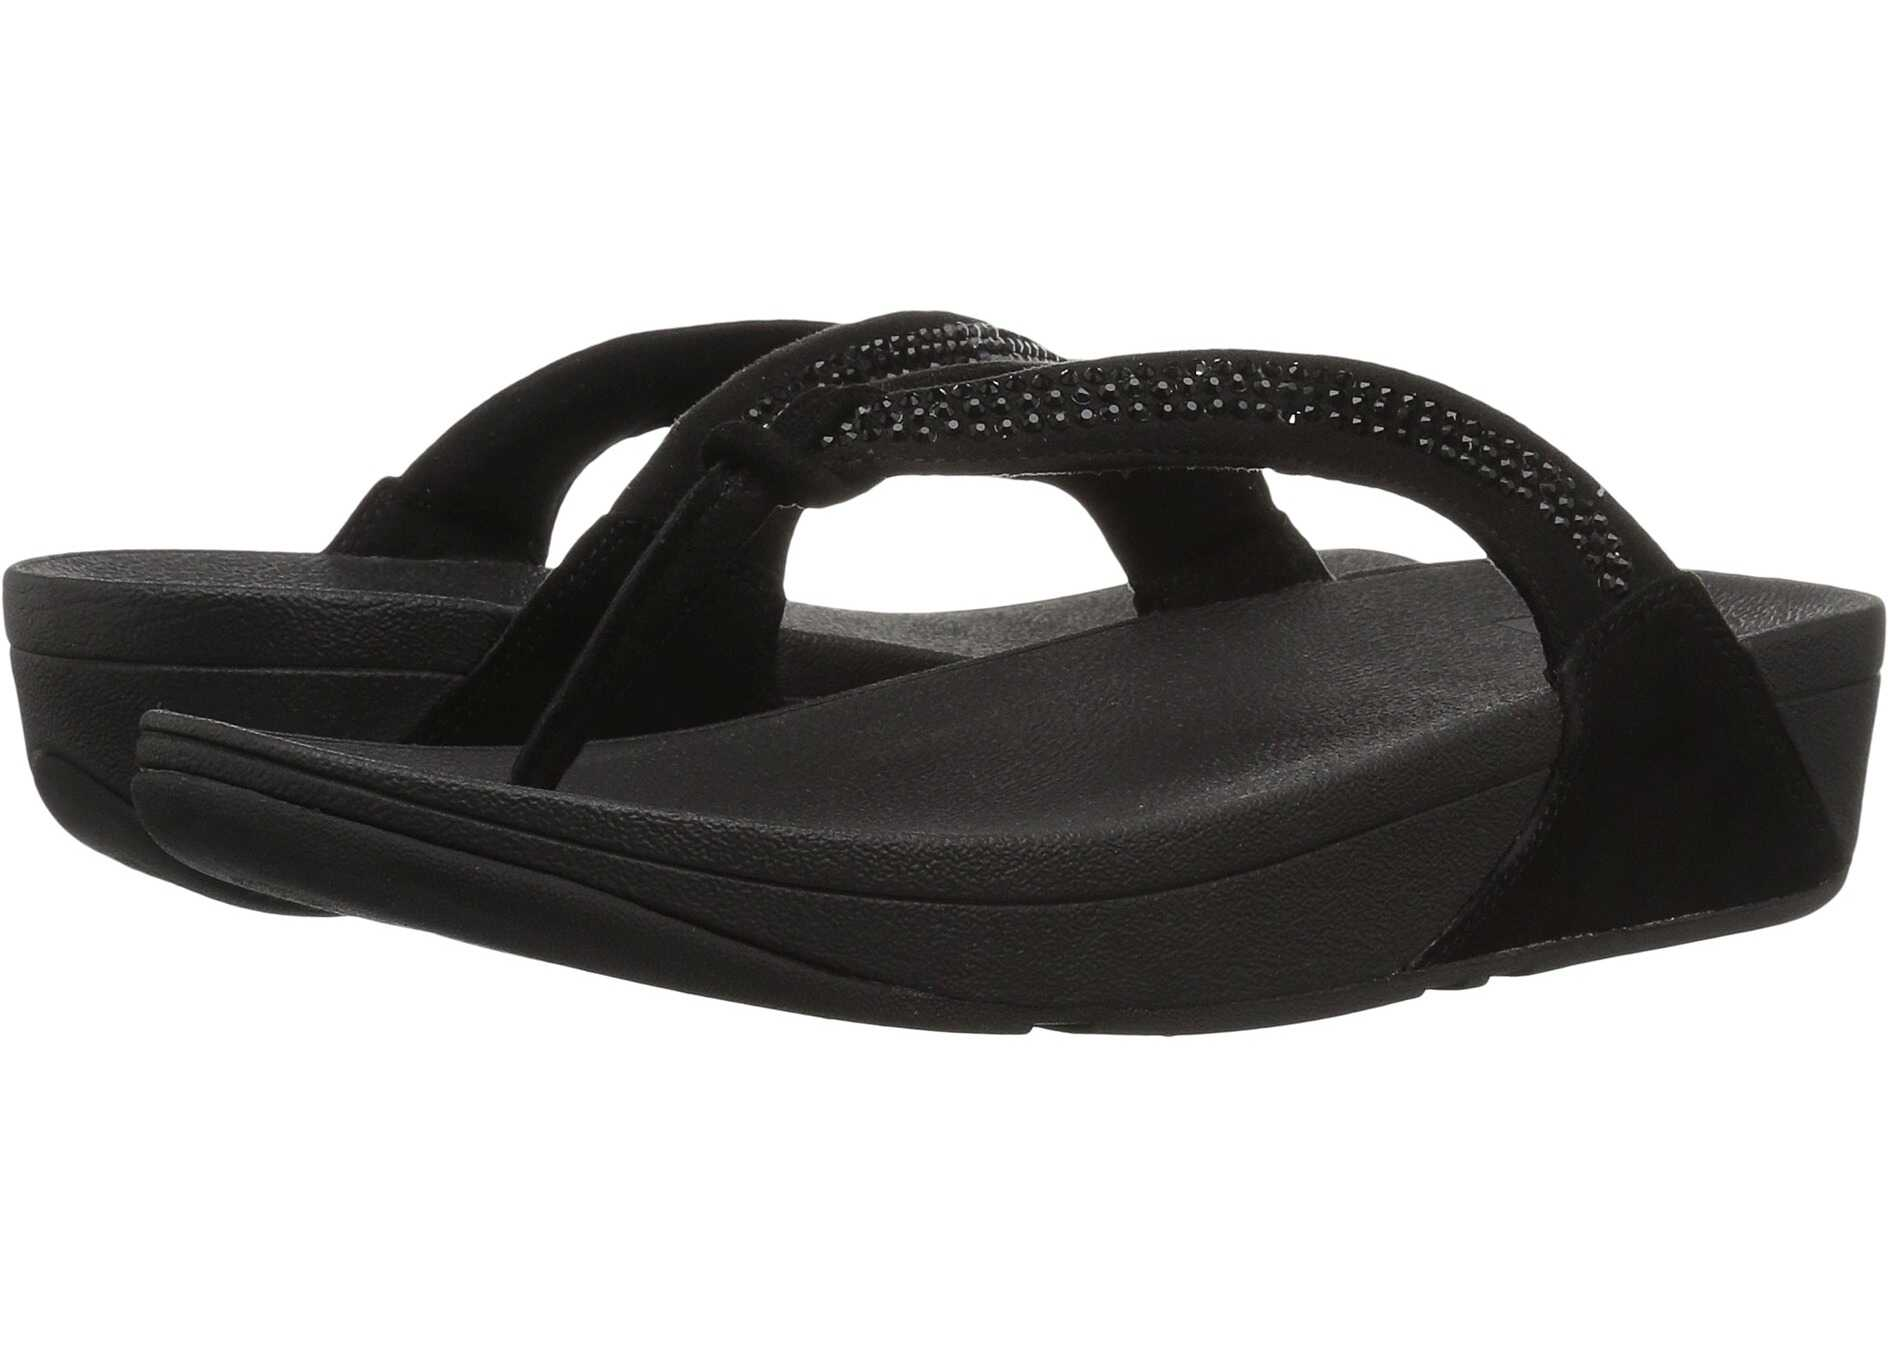 FitFlop Crystal Swirl All Black